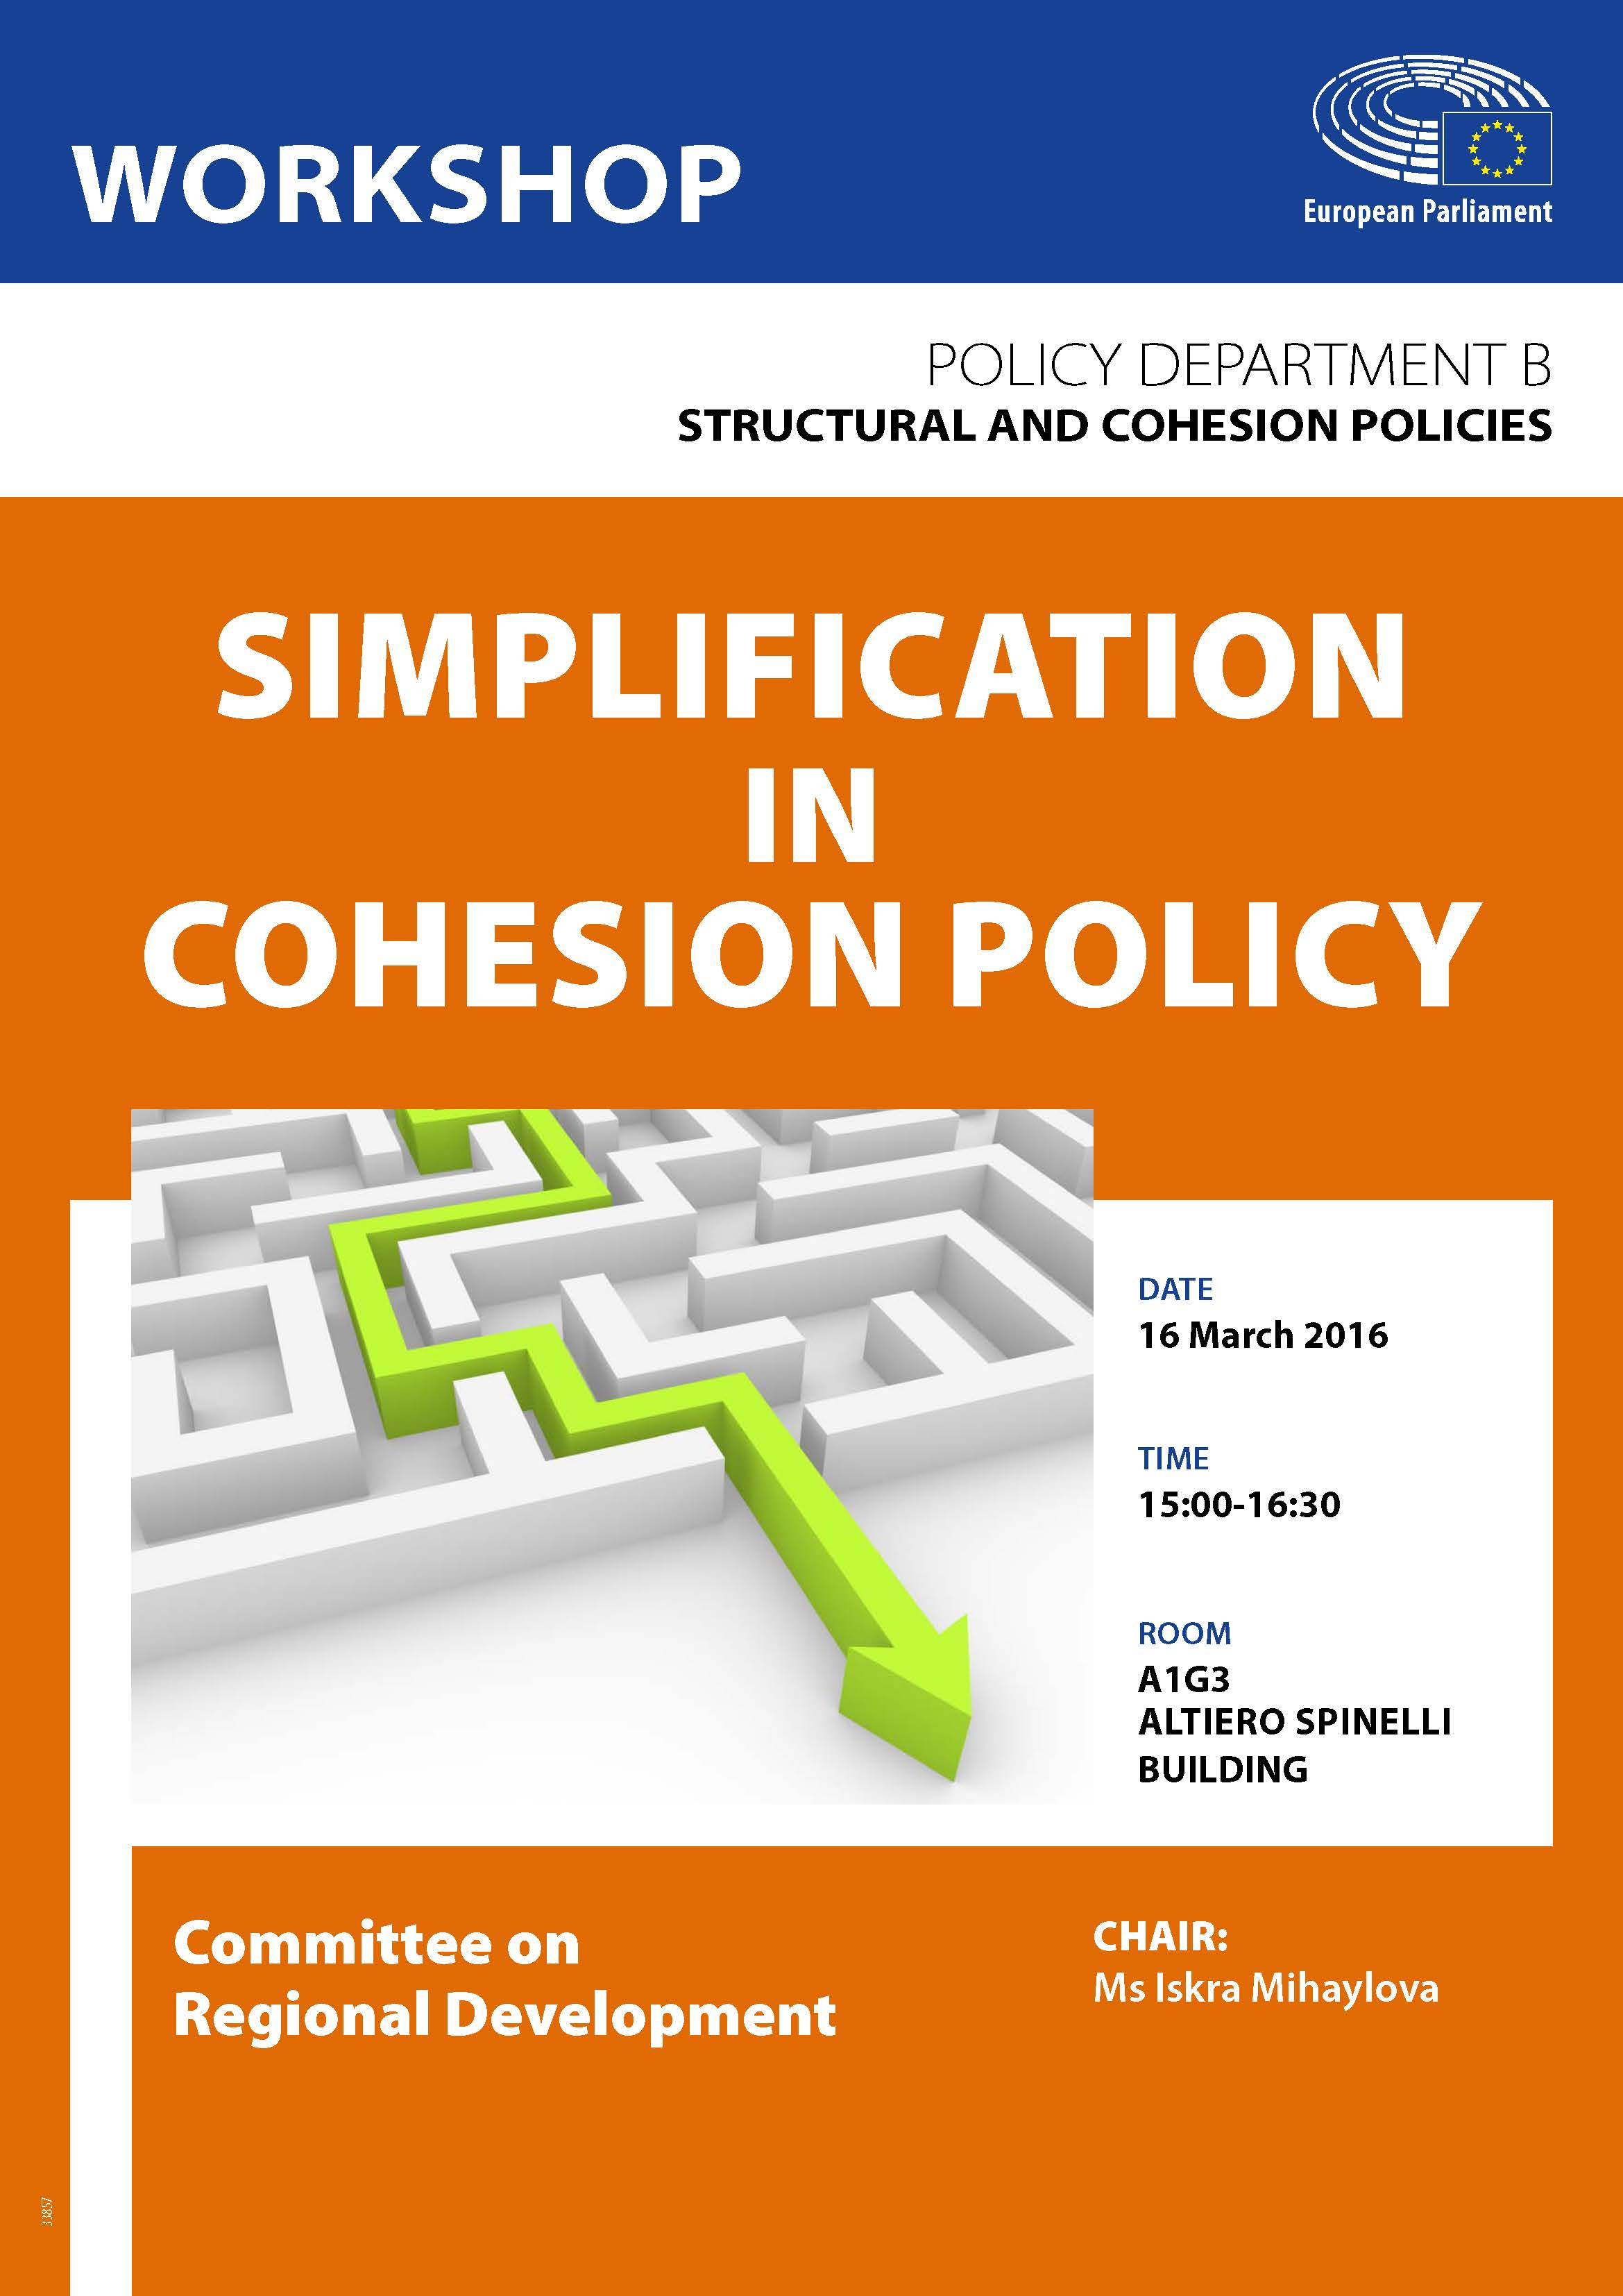 Poster for the Workshop on Simplification in Cohesion Policy